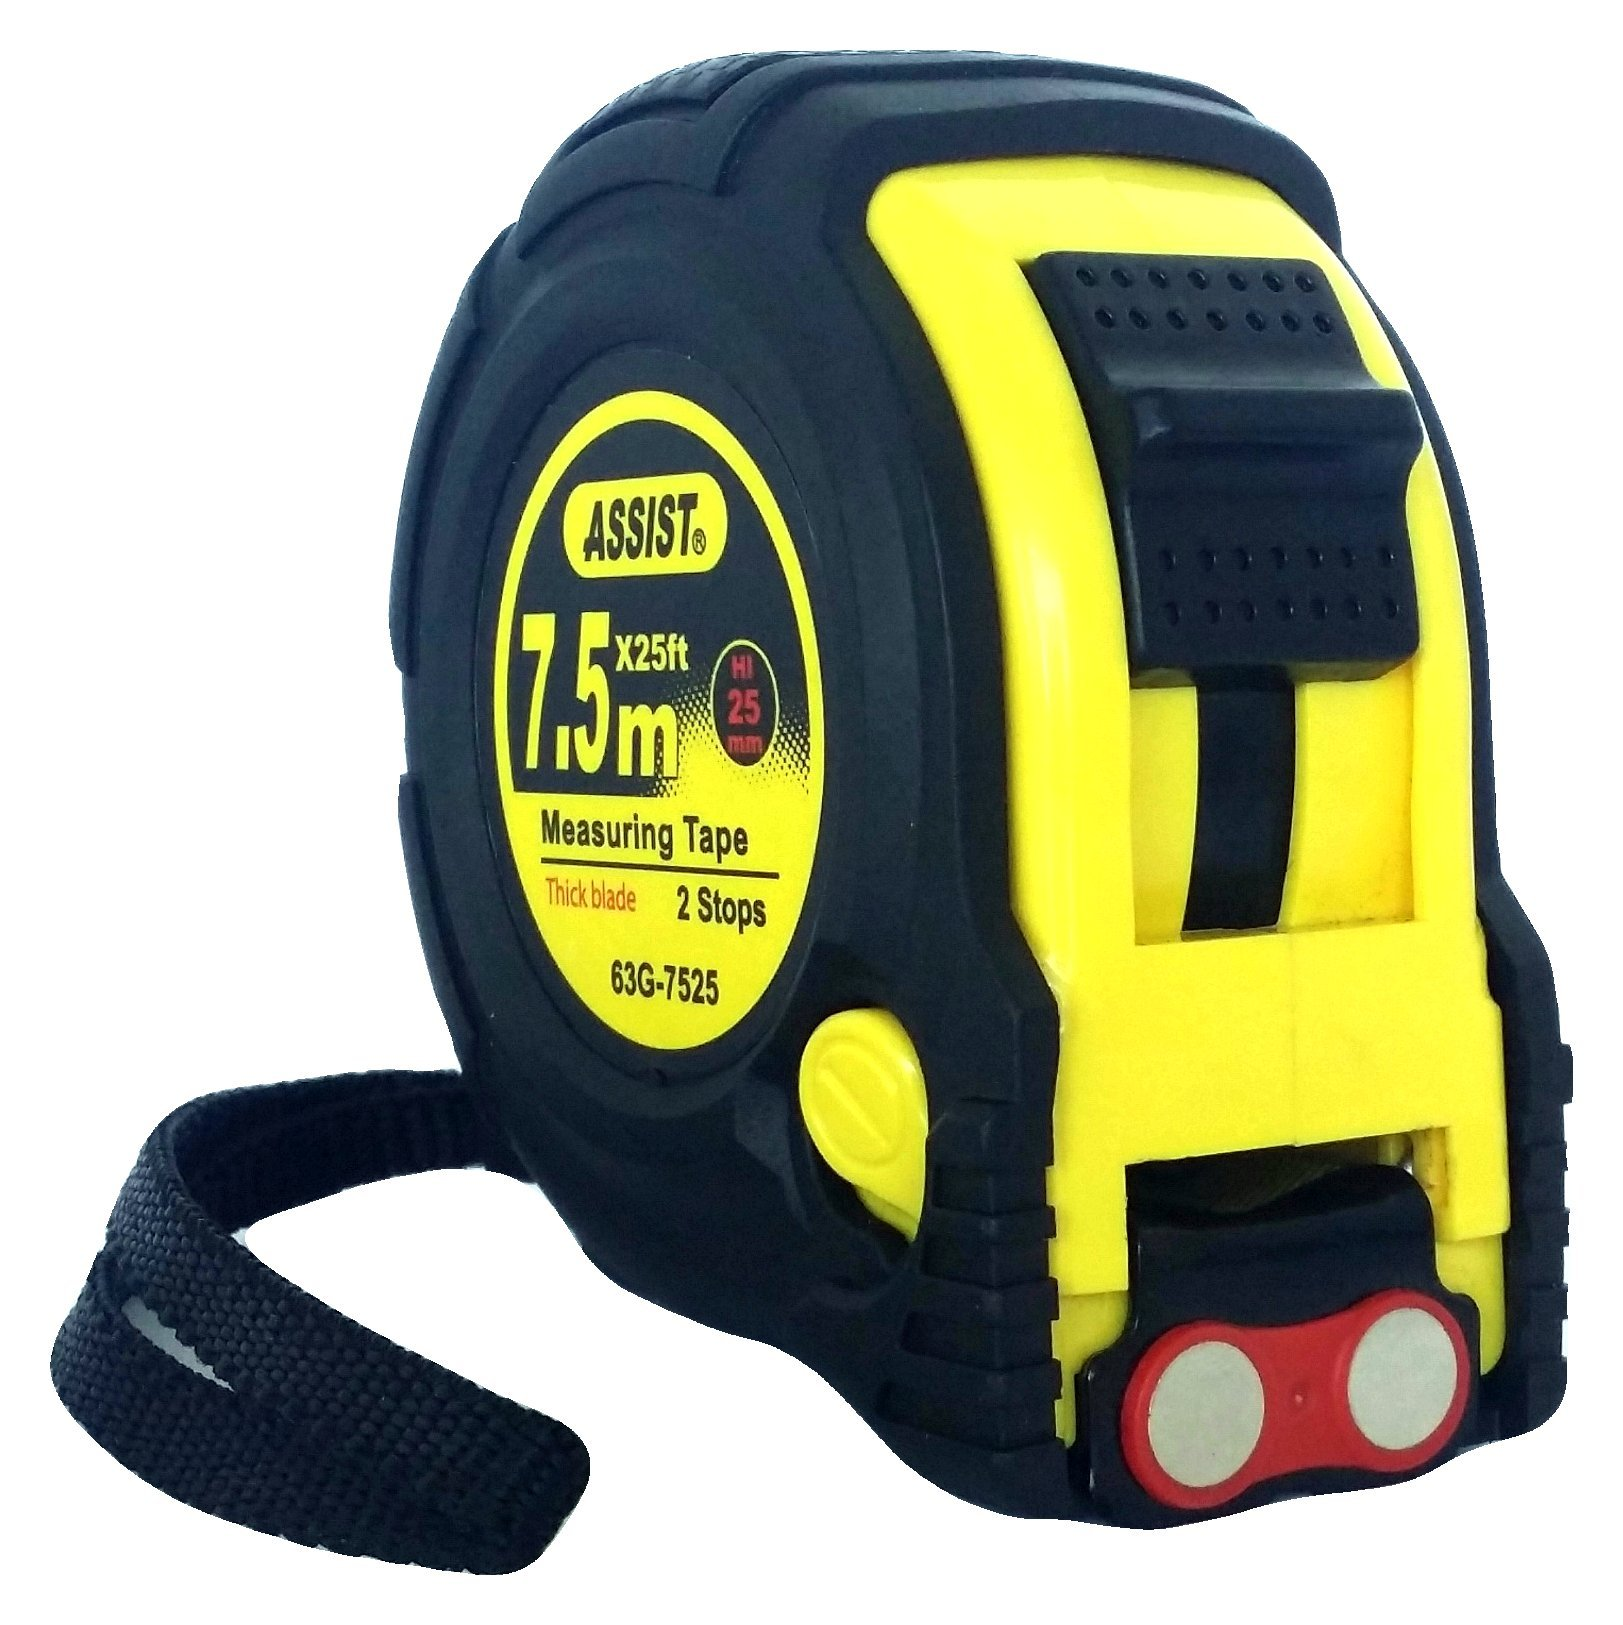 ASSIST-Tape Measure 25 ft by 1 inch with Metric markings included Magnetic Hook Belt Clip and Rubber Case Professional Quality